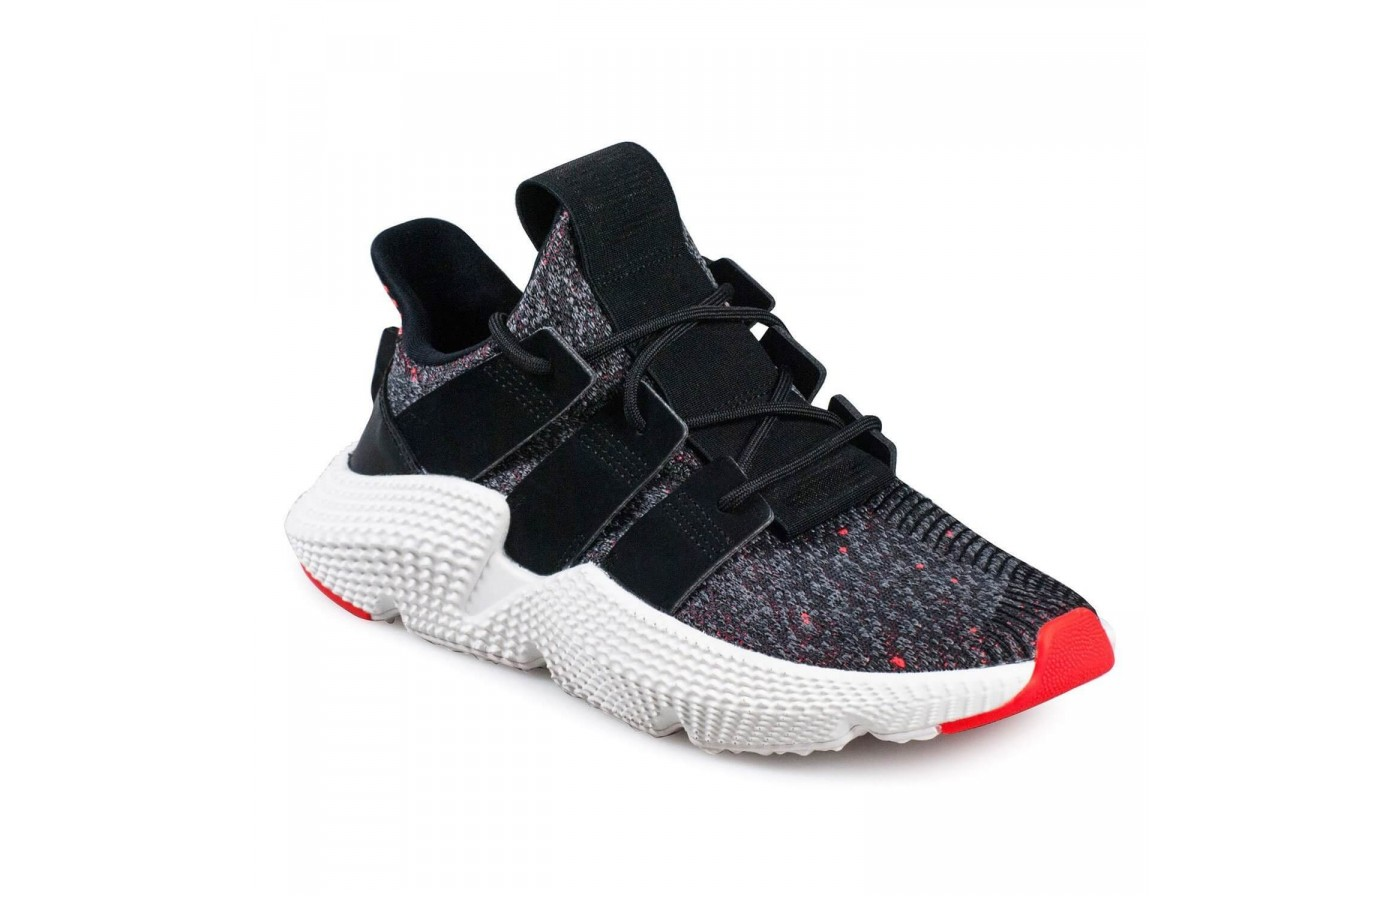 The Adidas Prophere includes an Ortholite sockliner